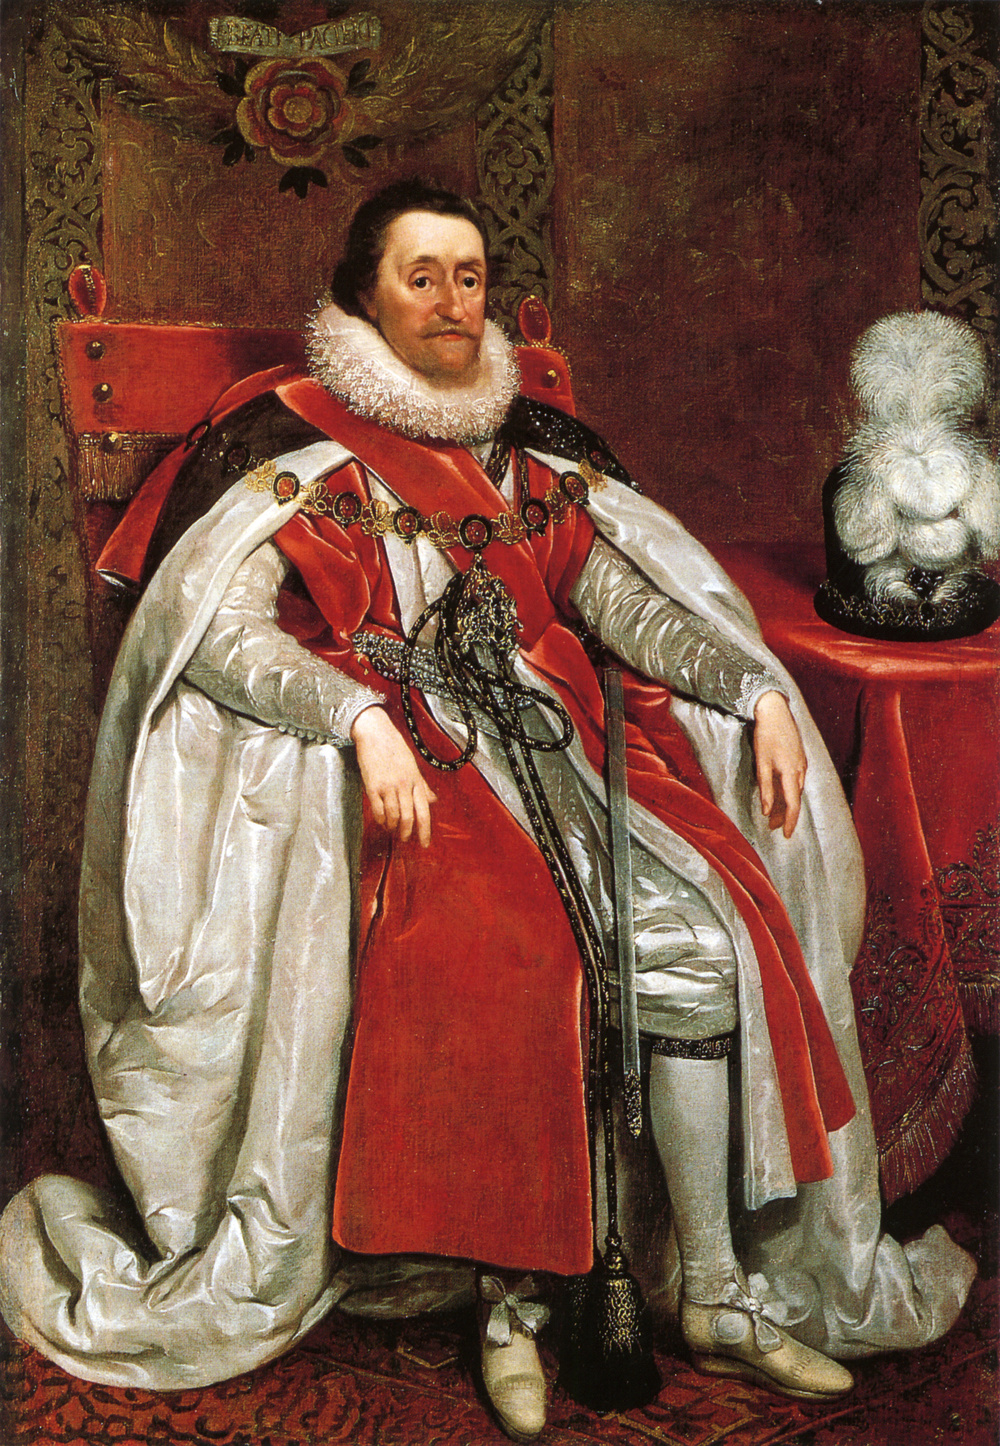 James I of England by Daniel Mytens - 1621